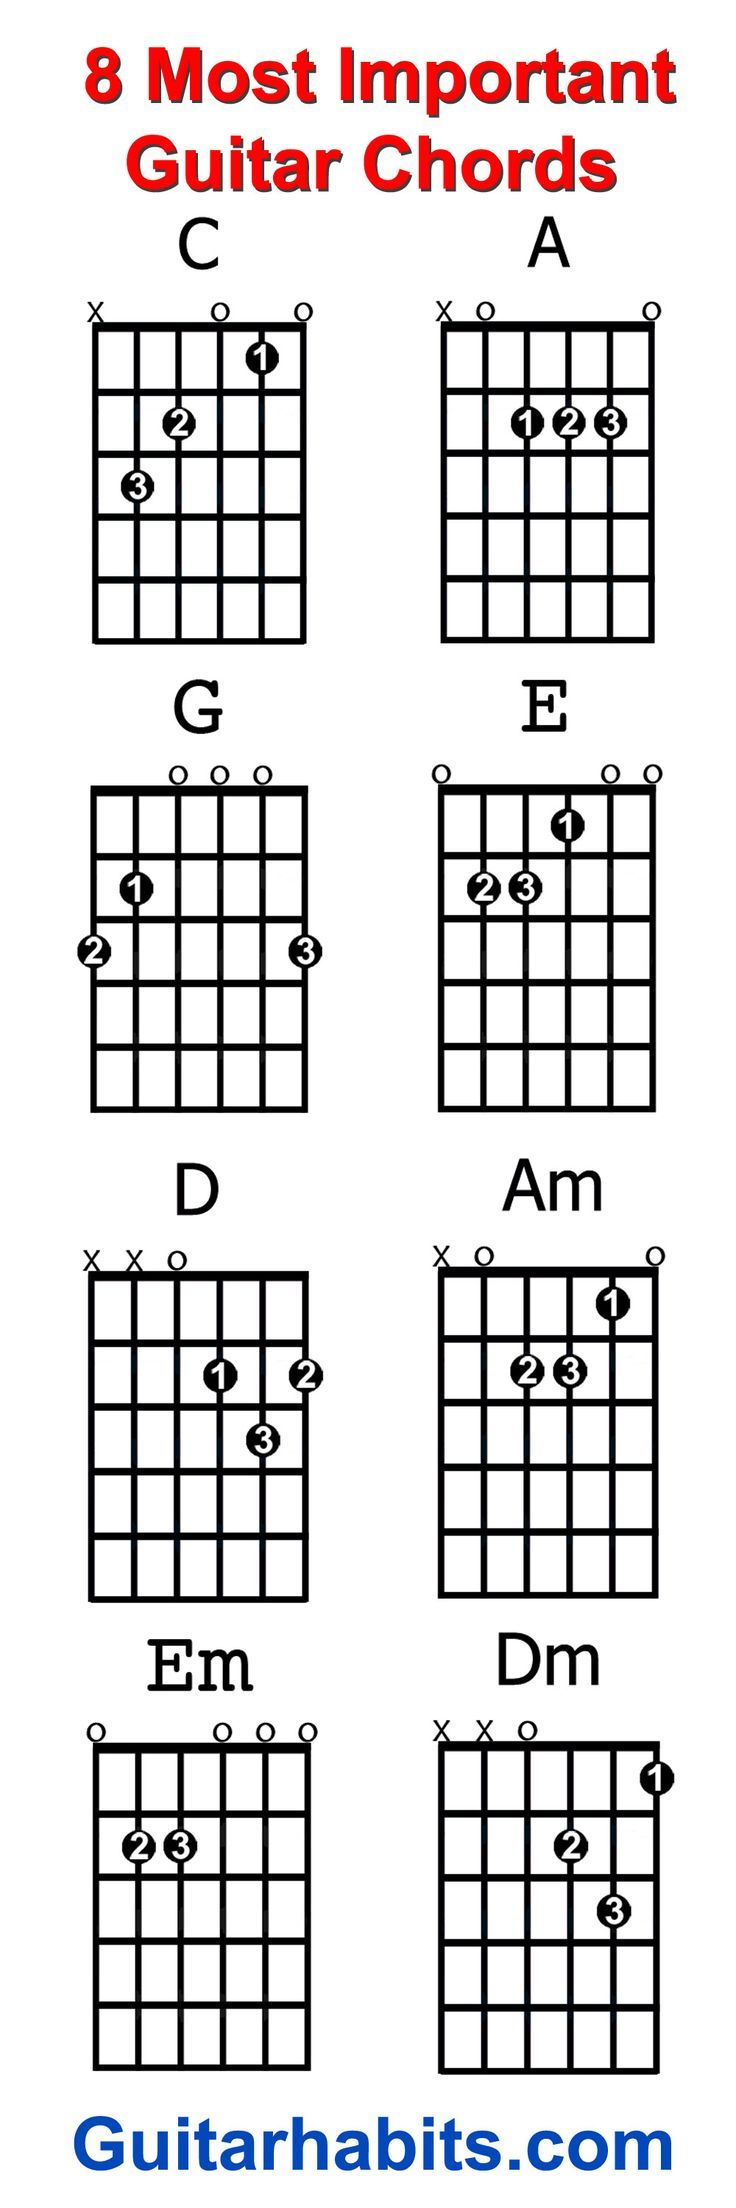 Where do you start when you want to learn to play guitar the 8 where do you start when you want to guitar chords learn to play guitar the 8 chords every beginner guitar player should learn first are c a g e hexwebz Choice Image